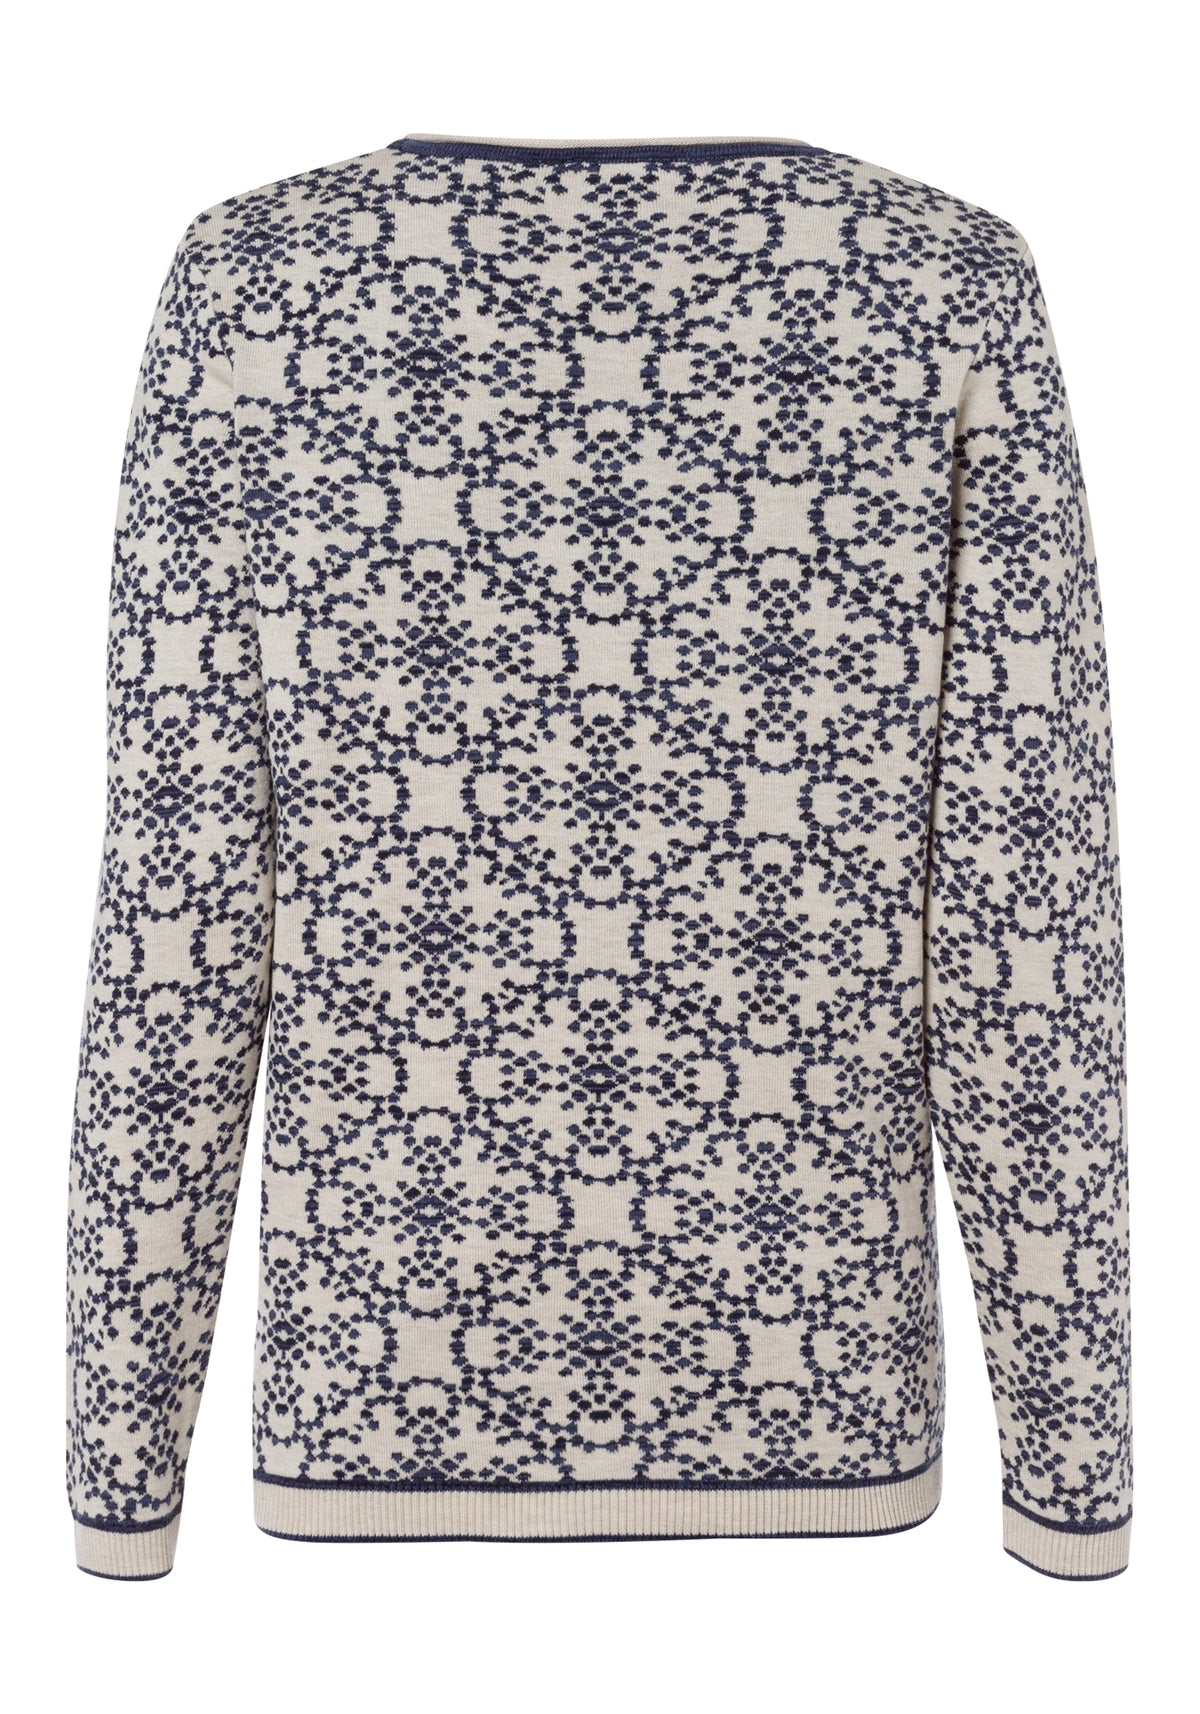 Tile Print Sweater with Trim